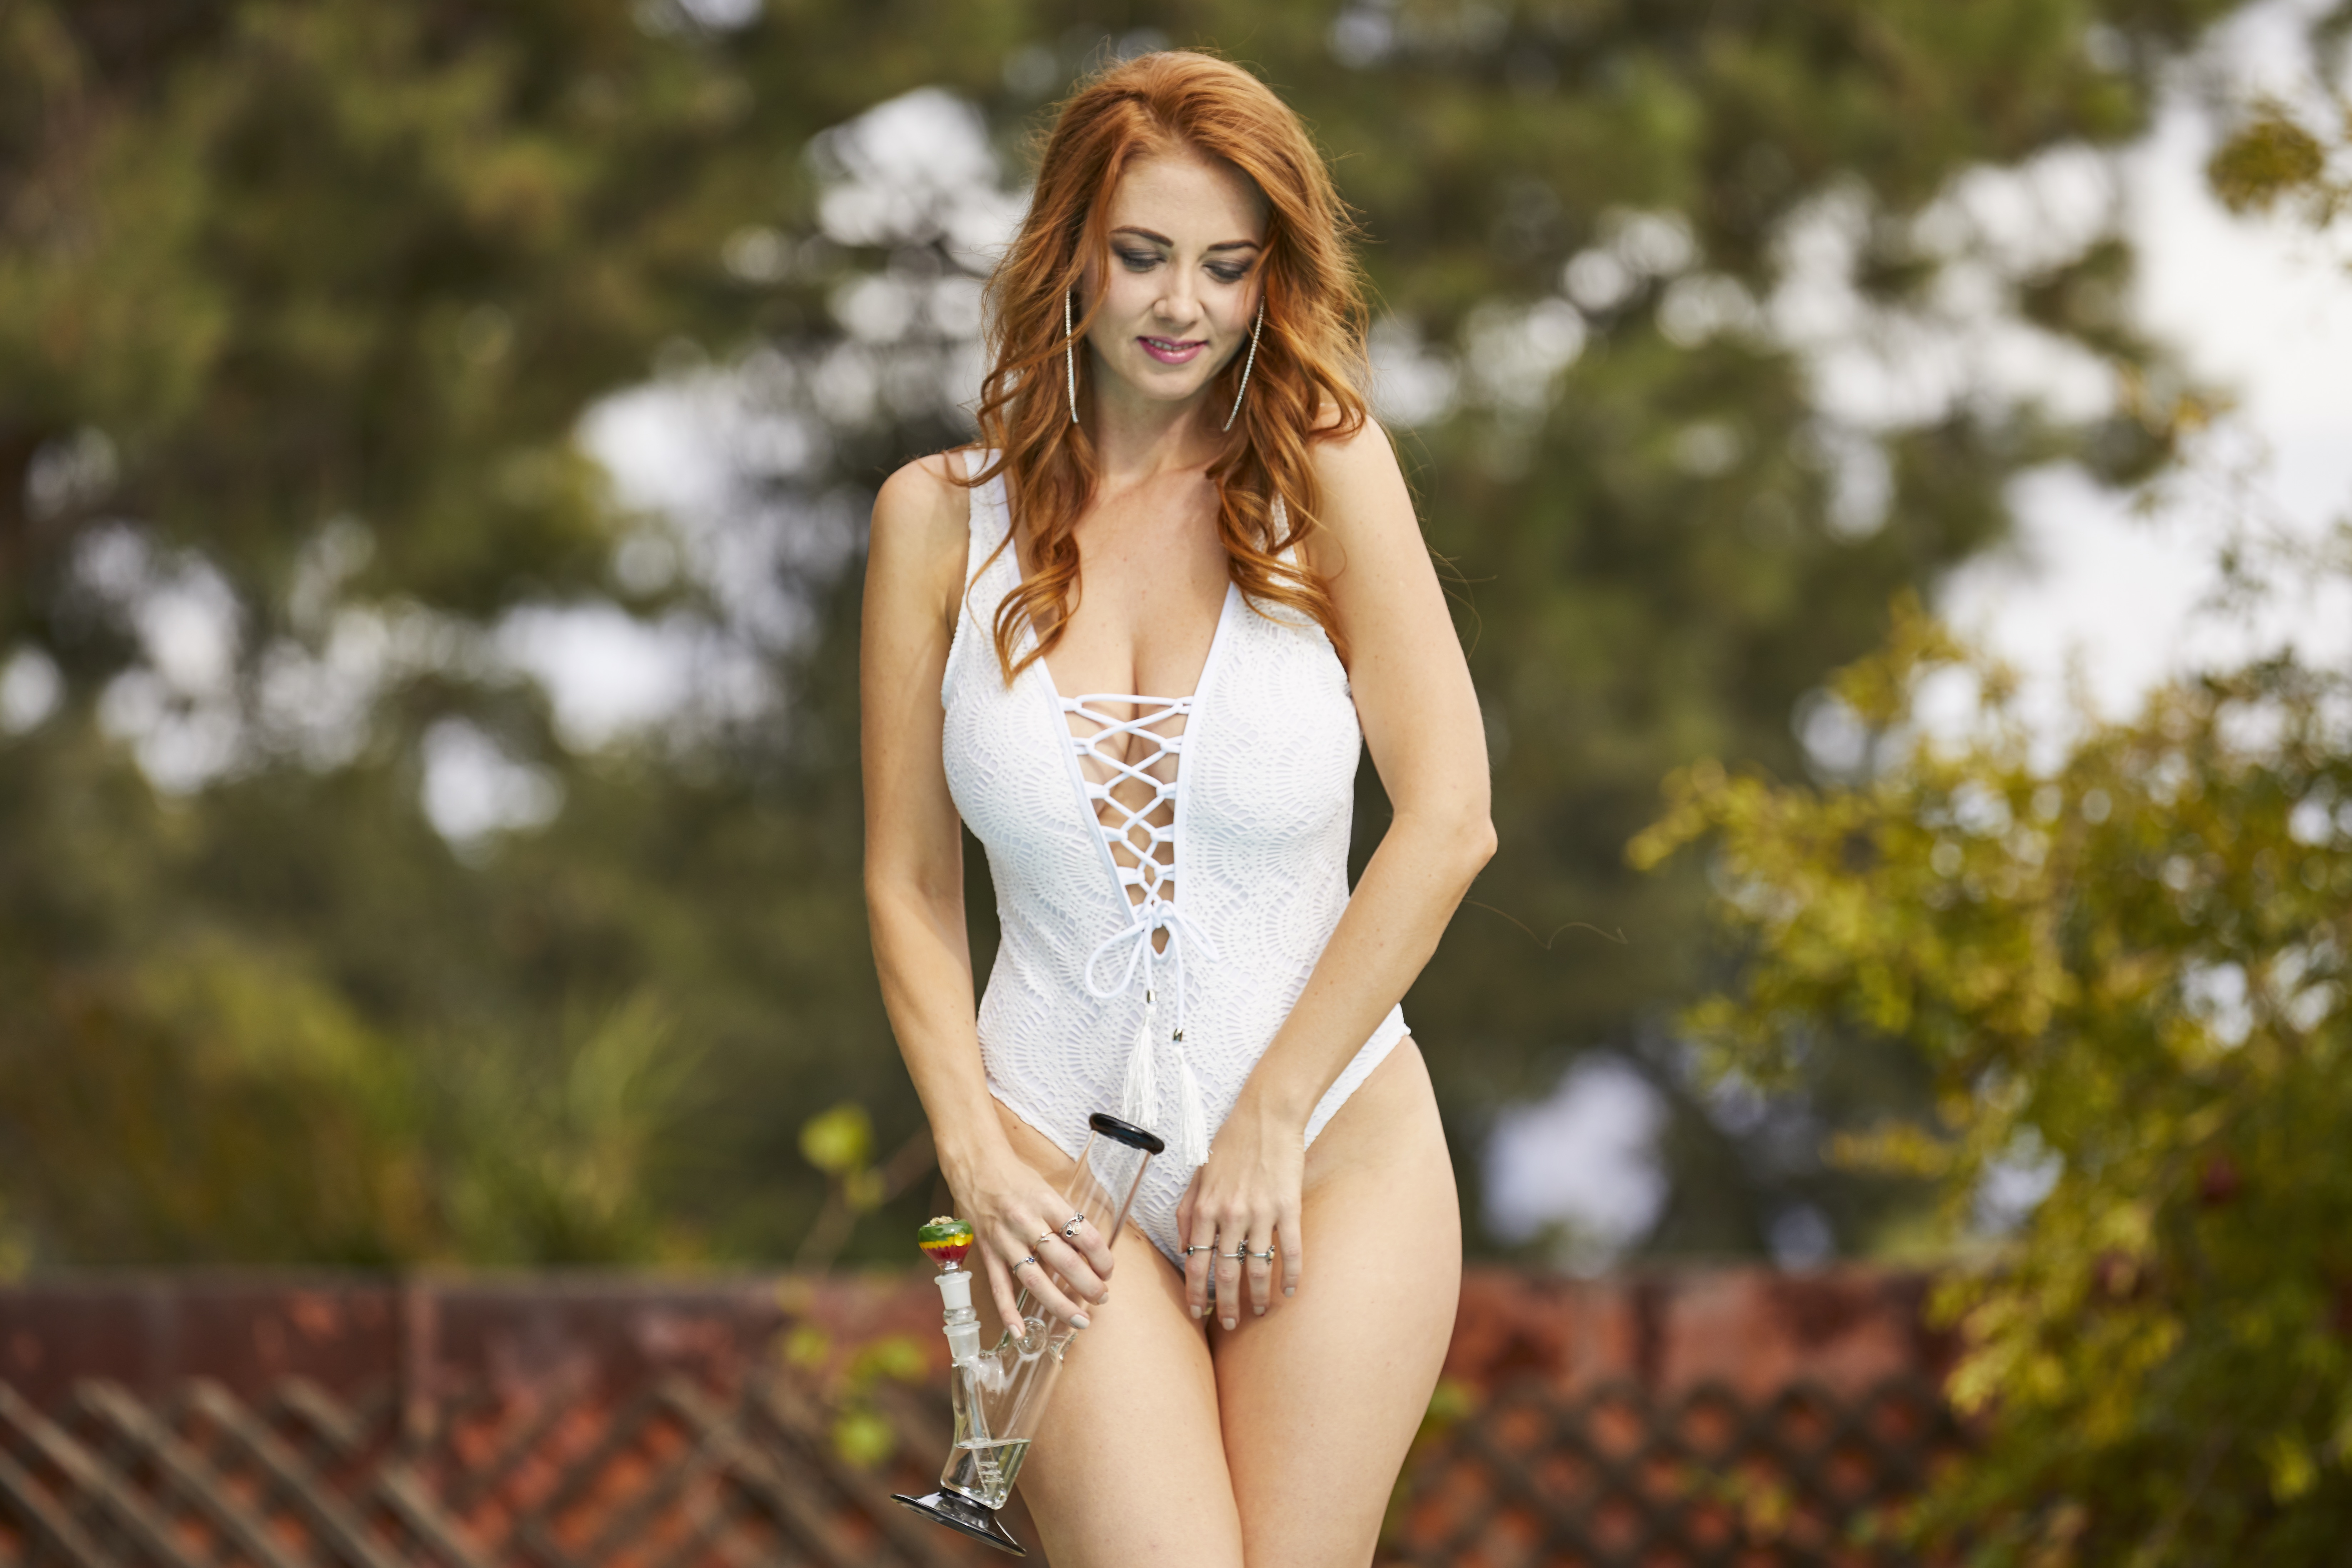 redhead hotty by the pool poolside with a bonger